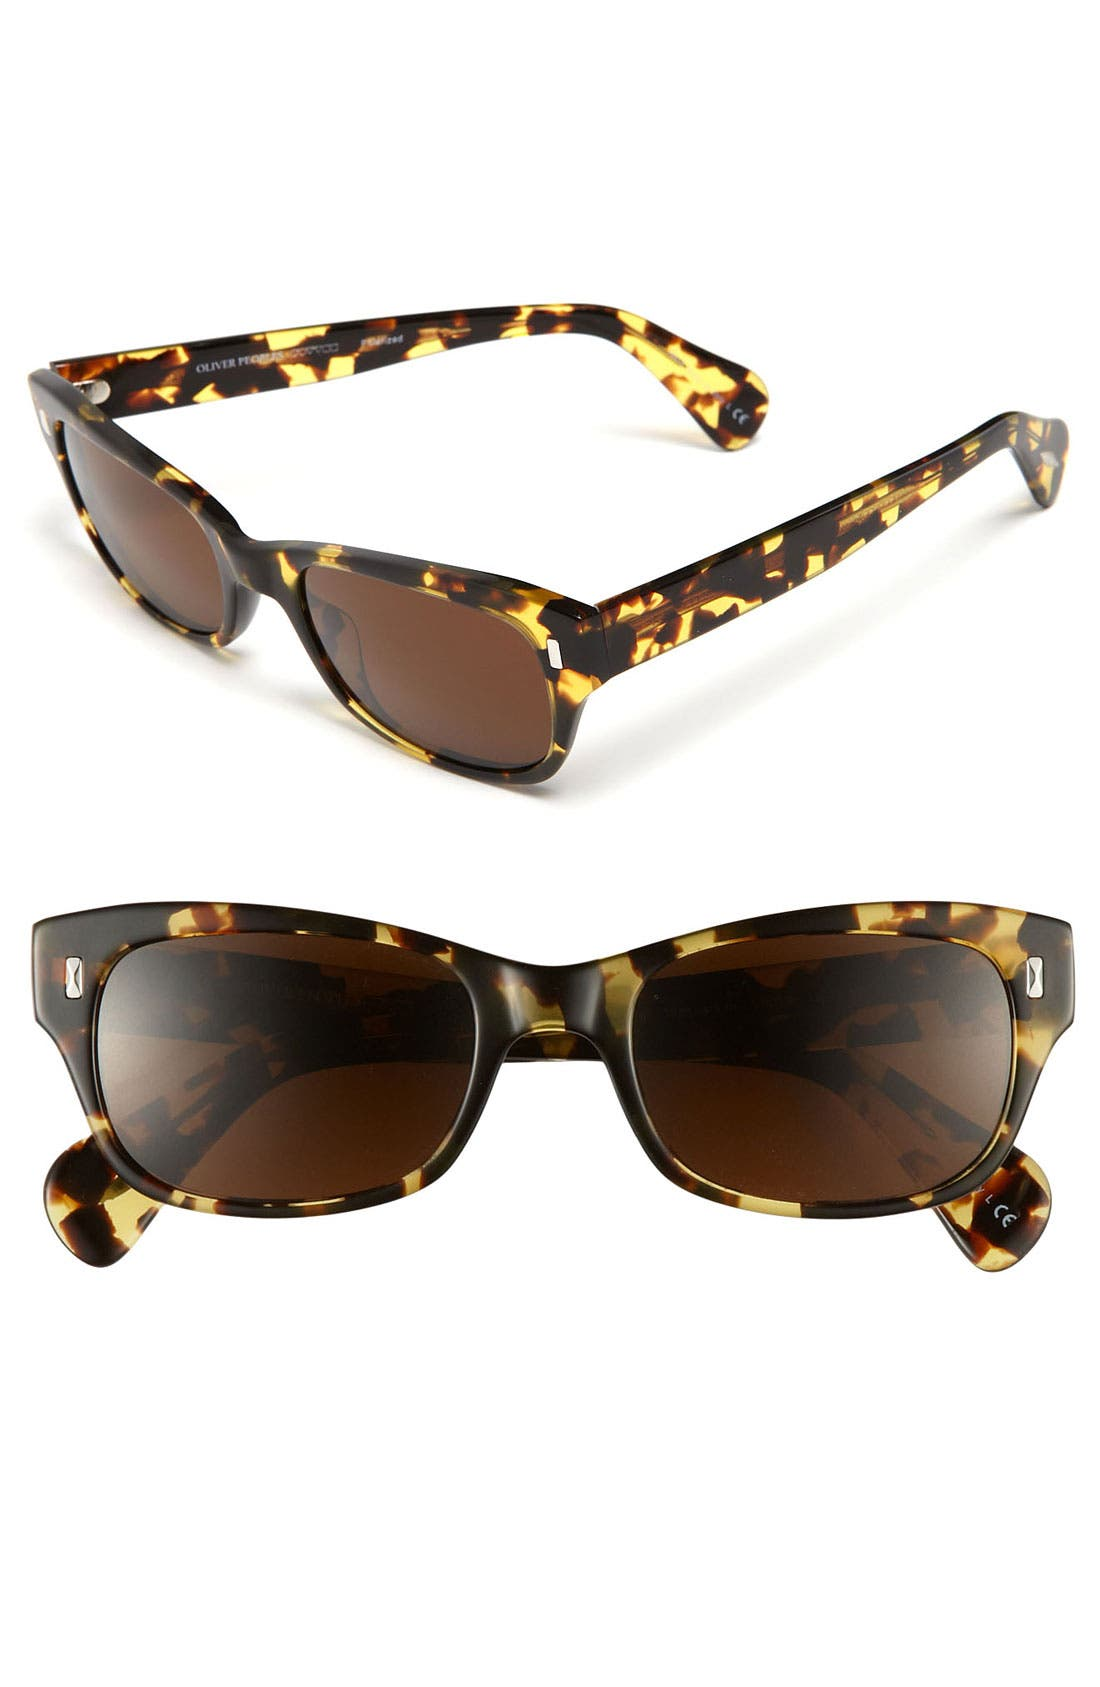 Main Image - Oliver Peoples 'Wacks' 51mm Sunglasses